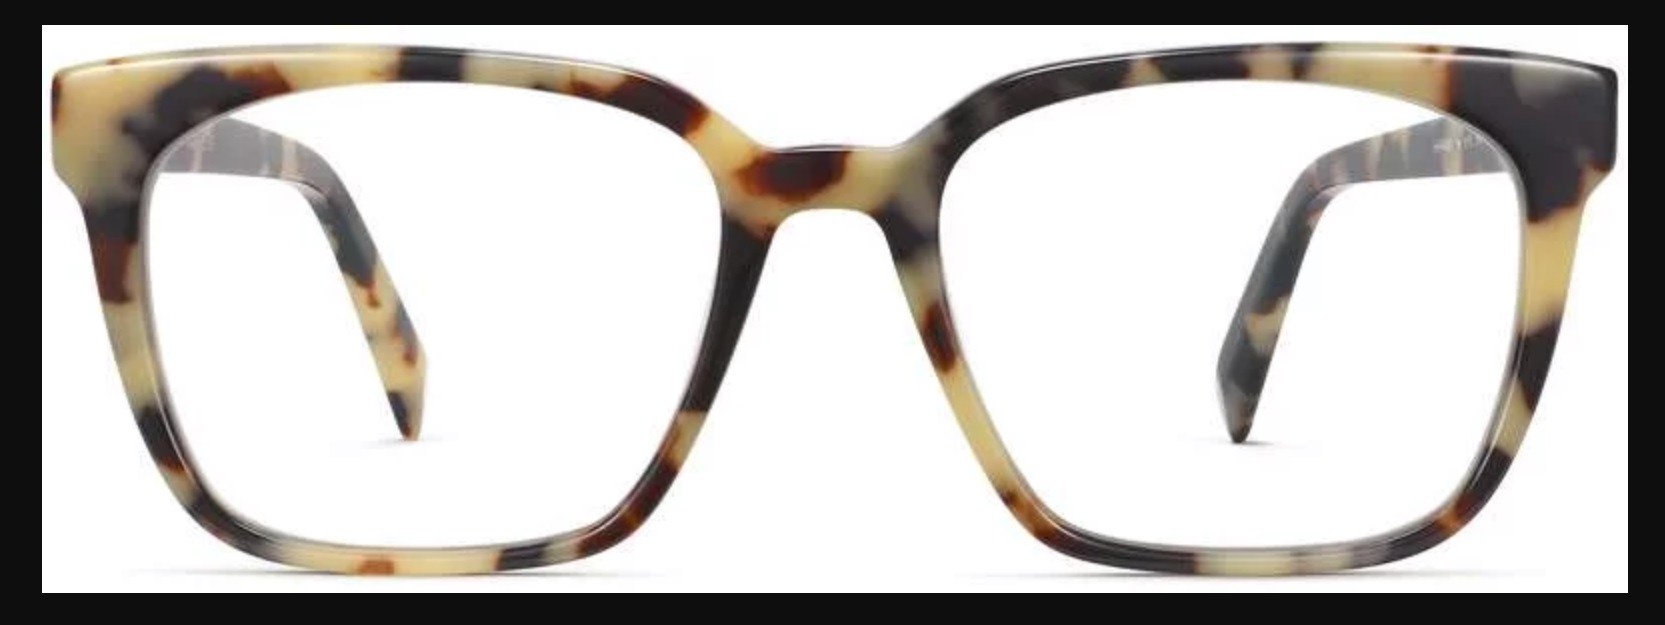 Tortise Shell Eye Glasses